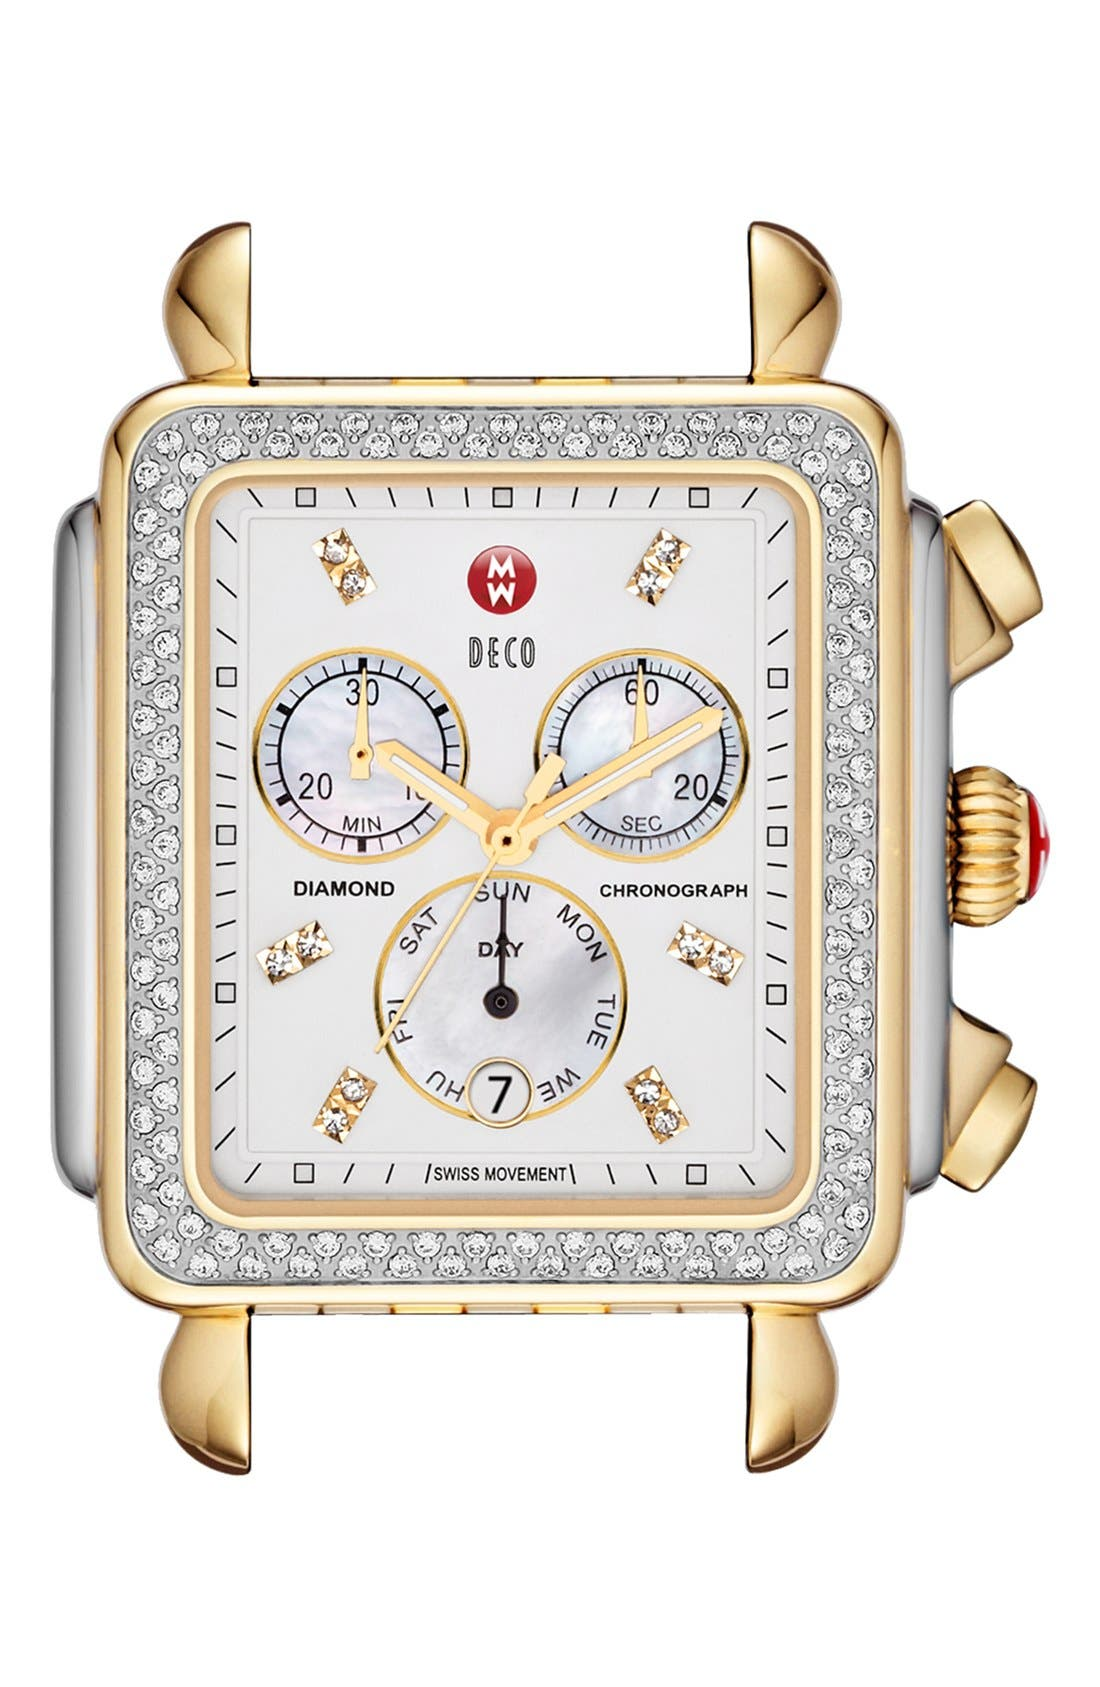 Main Image - MICHELE 'Deco XL Diamond' Diamond Dial Two-Tone Watch Case, 37mm x 38mm